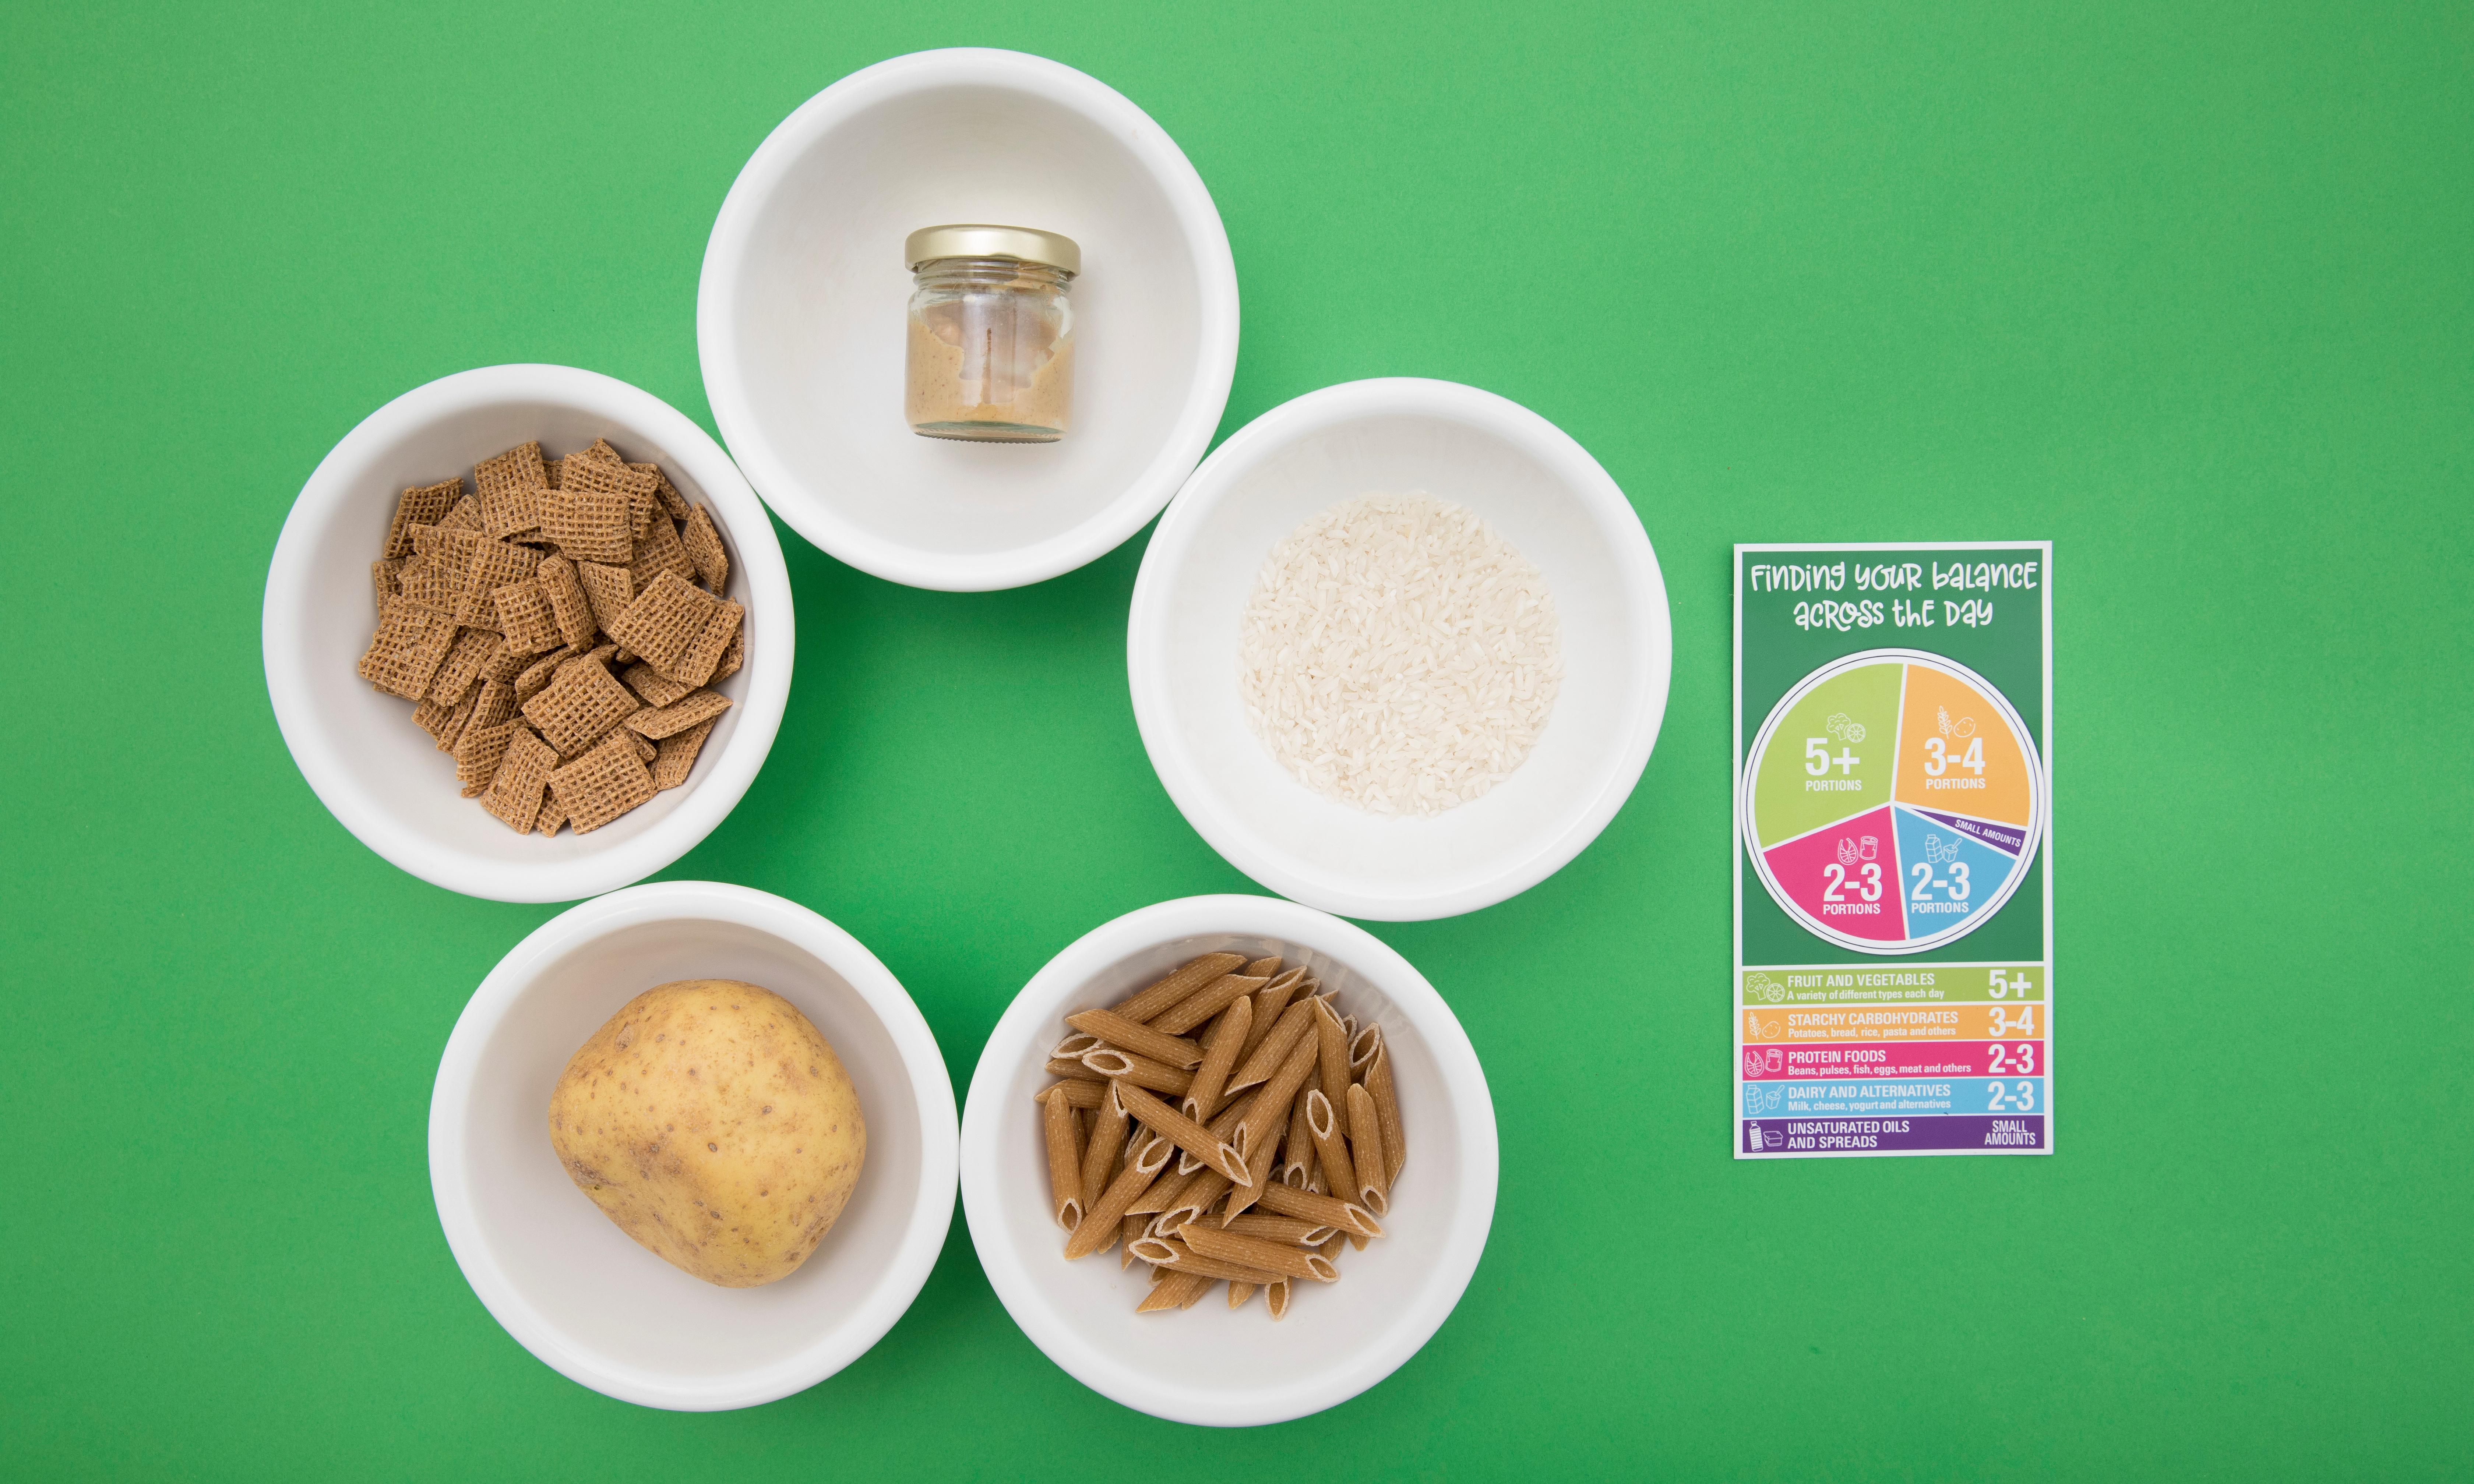 Nutritionists launch portion size guide to tackle overeating